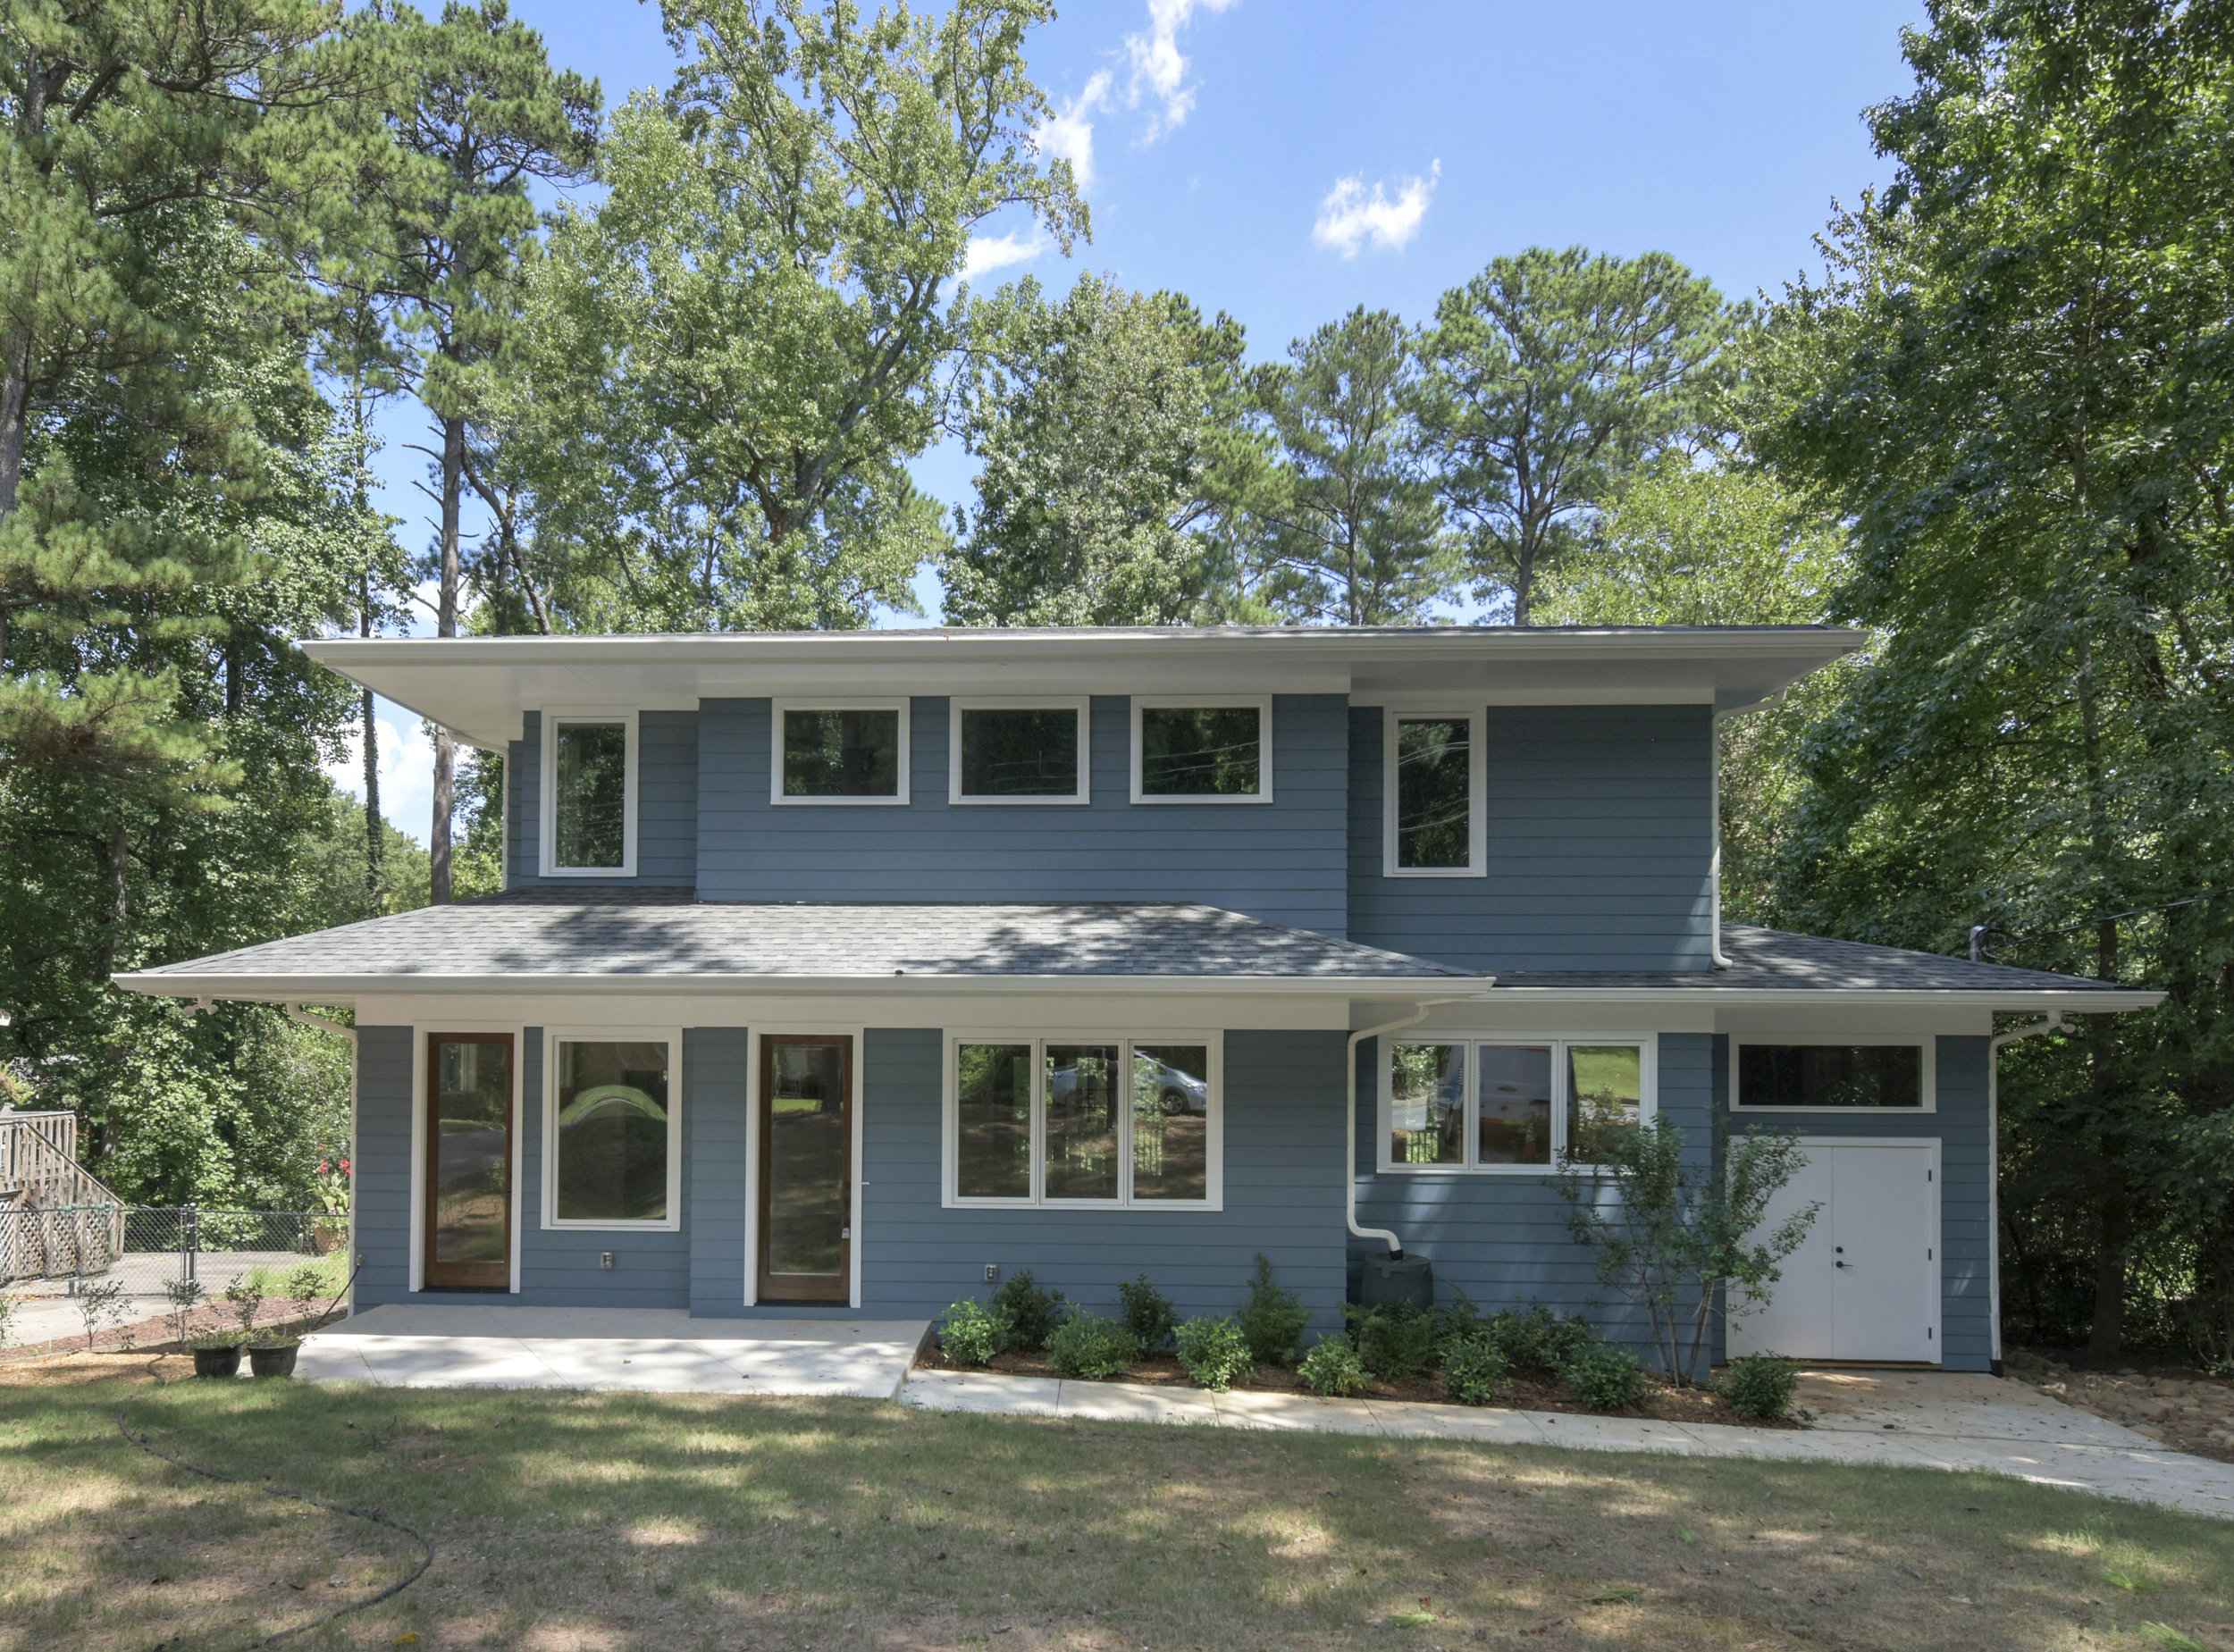 This Decatur home began as a modest 1950's style ranch with a carport and has now been transformed into an Eric Rawling designed Prairie-style home. The owner wanted to bring the feeling of the outside in. Only the exterior framing and foundation remained when we did this gut to studs renovation.